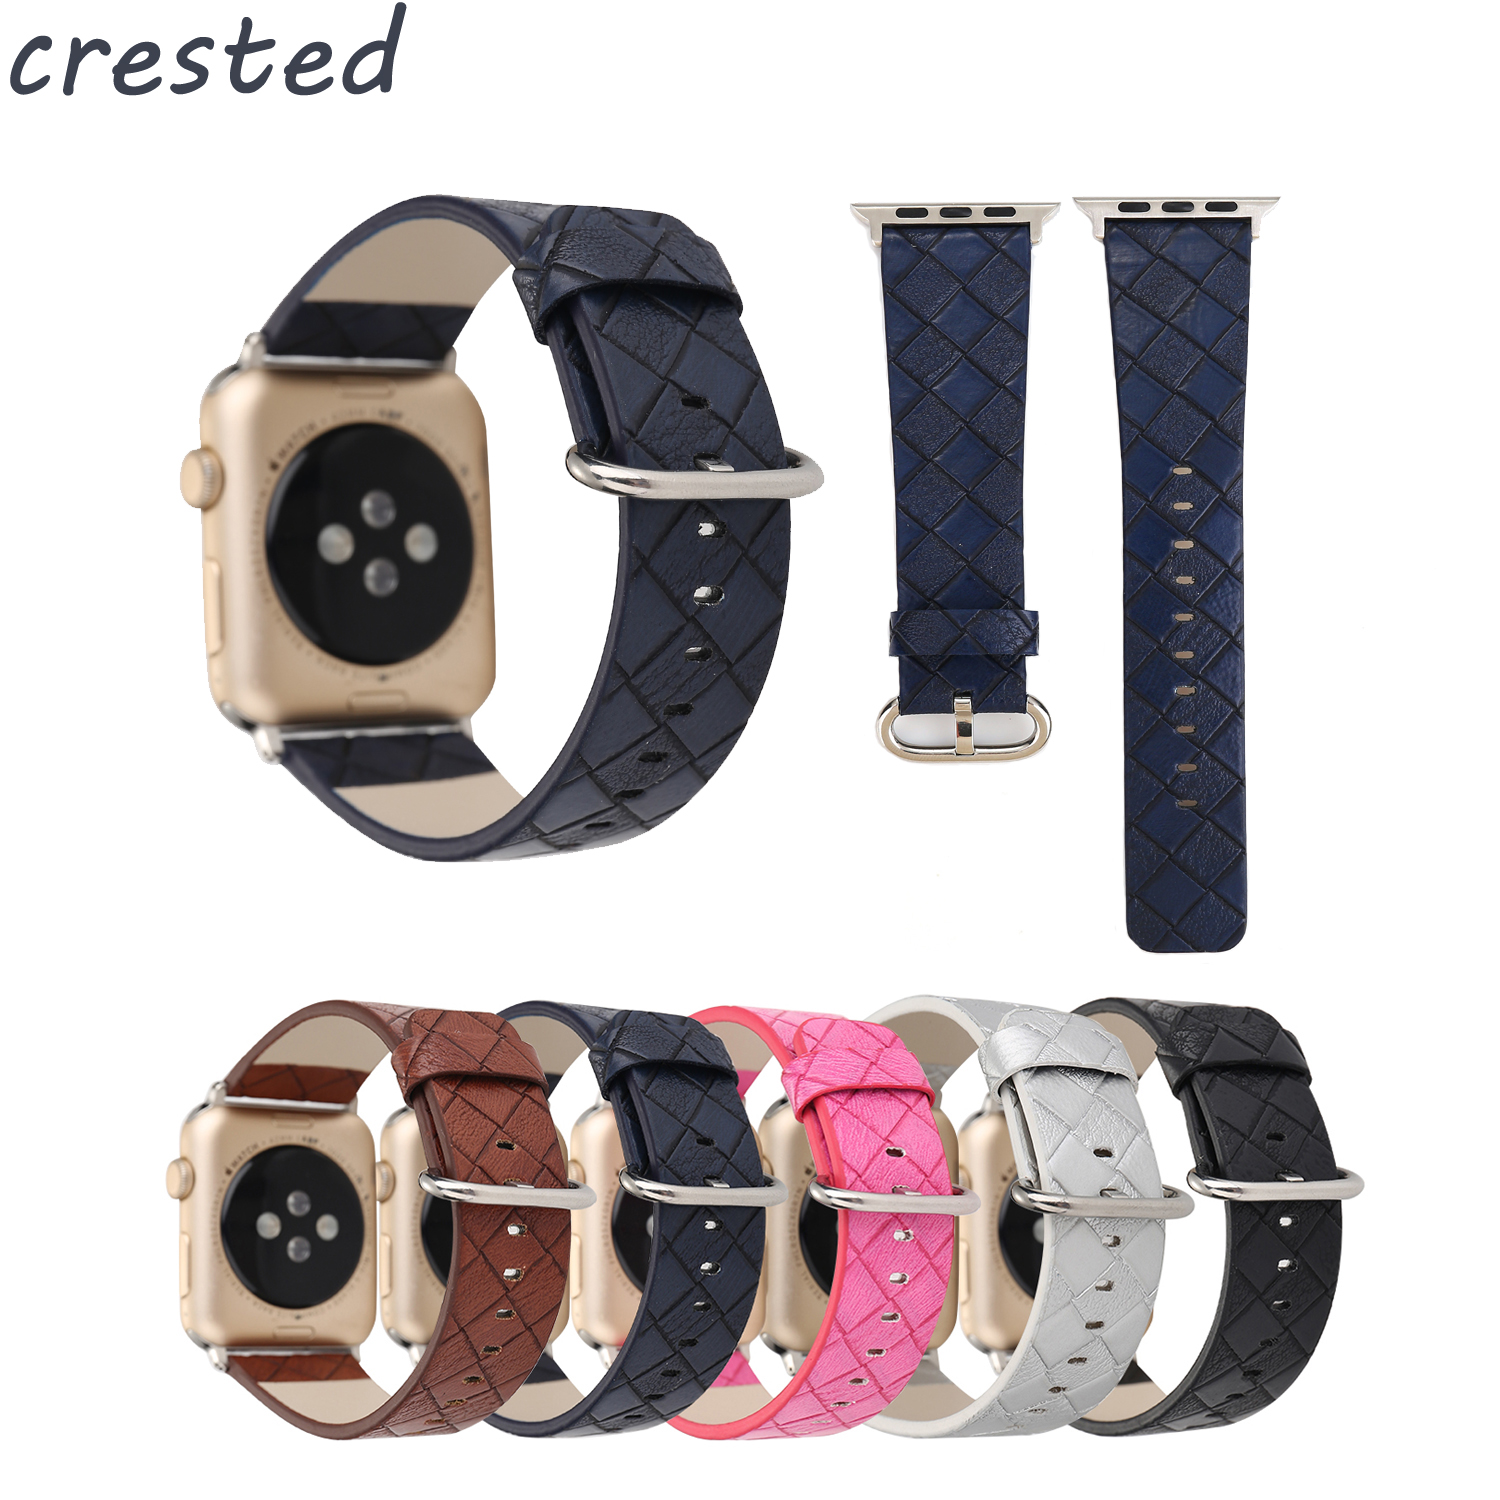 купить CRESTED genuine leather strap for apple watch band 42mm/38 Grid pattern leather bracelet band for iwatch 1/2/3 replacement strap по цене 728.45 рублей